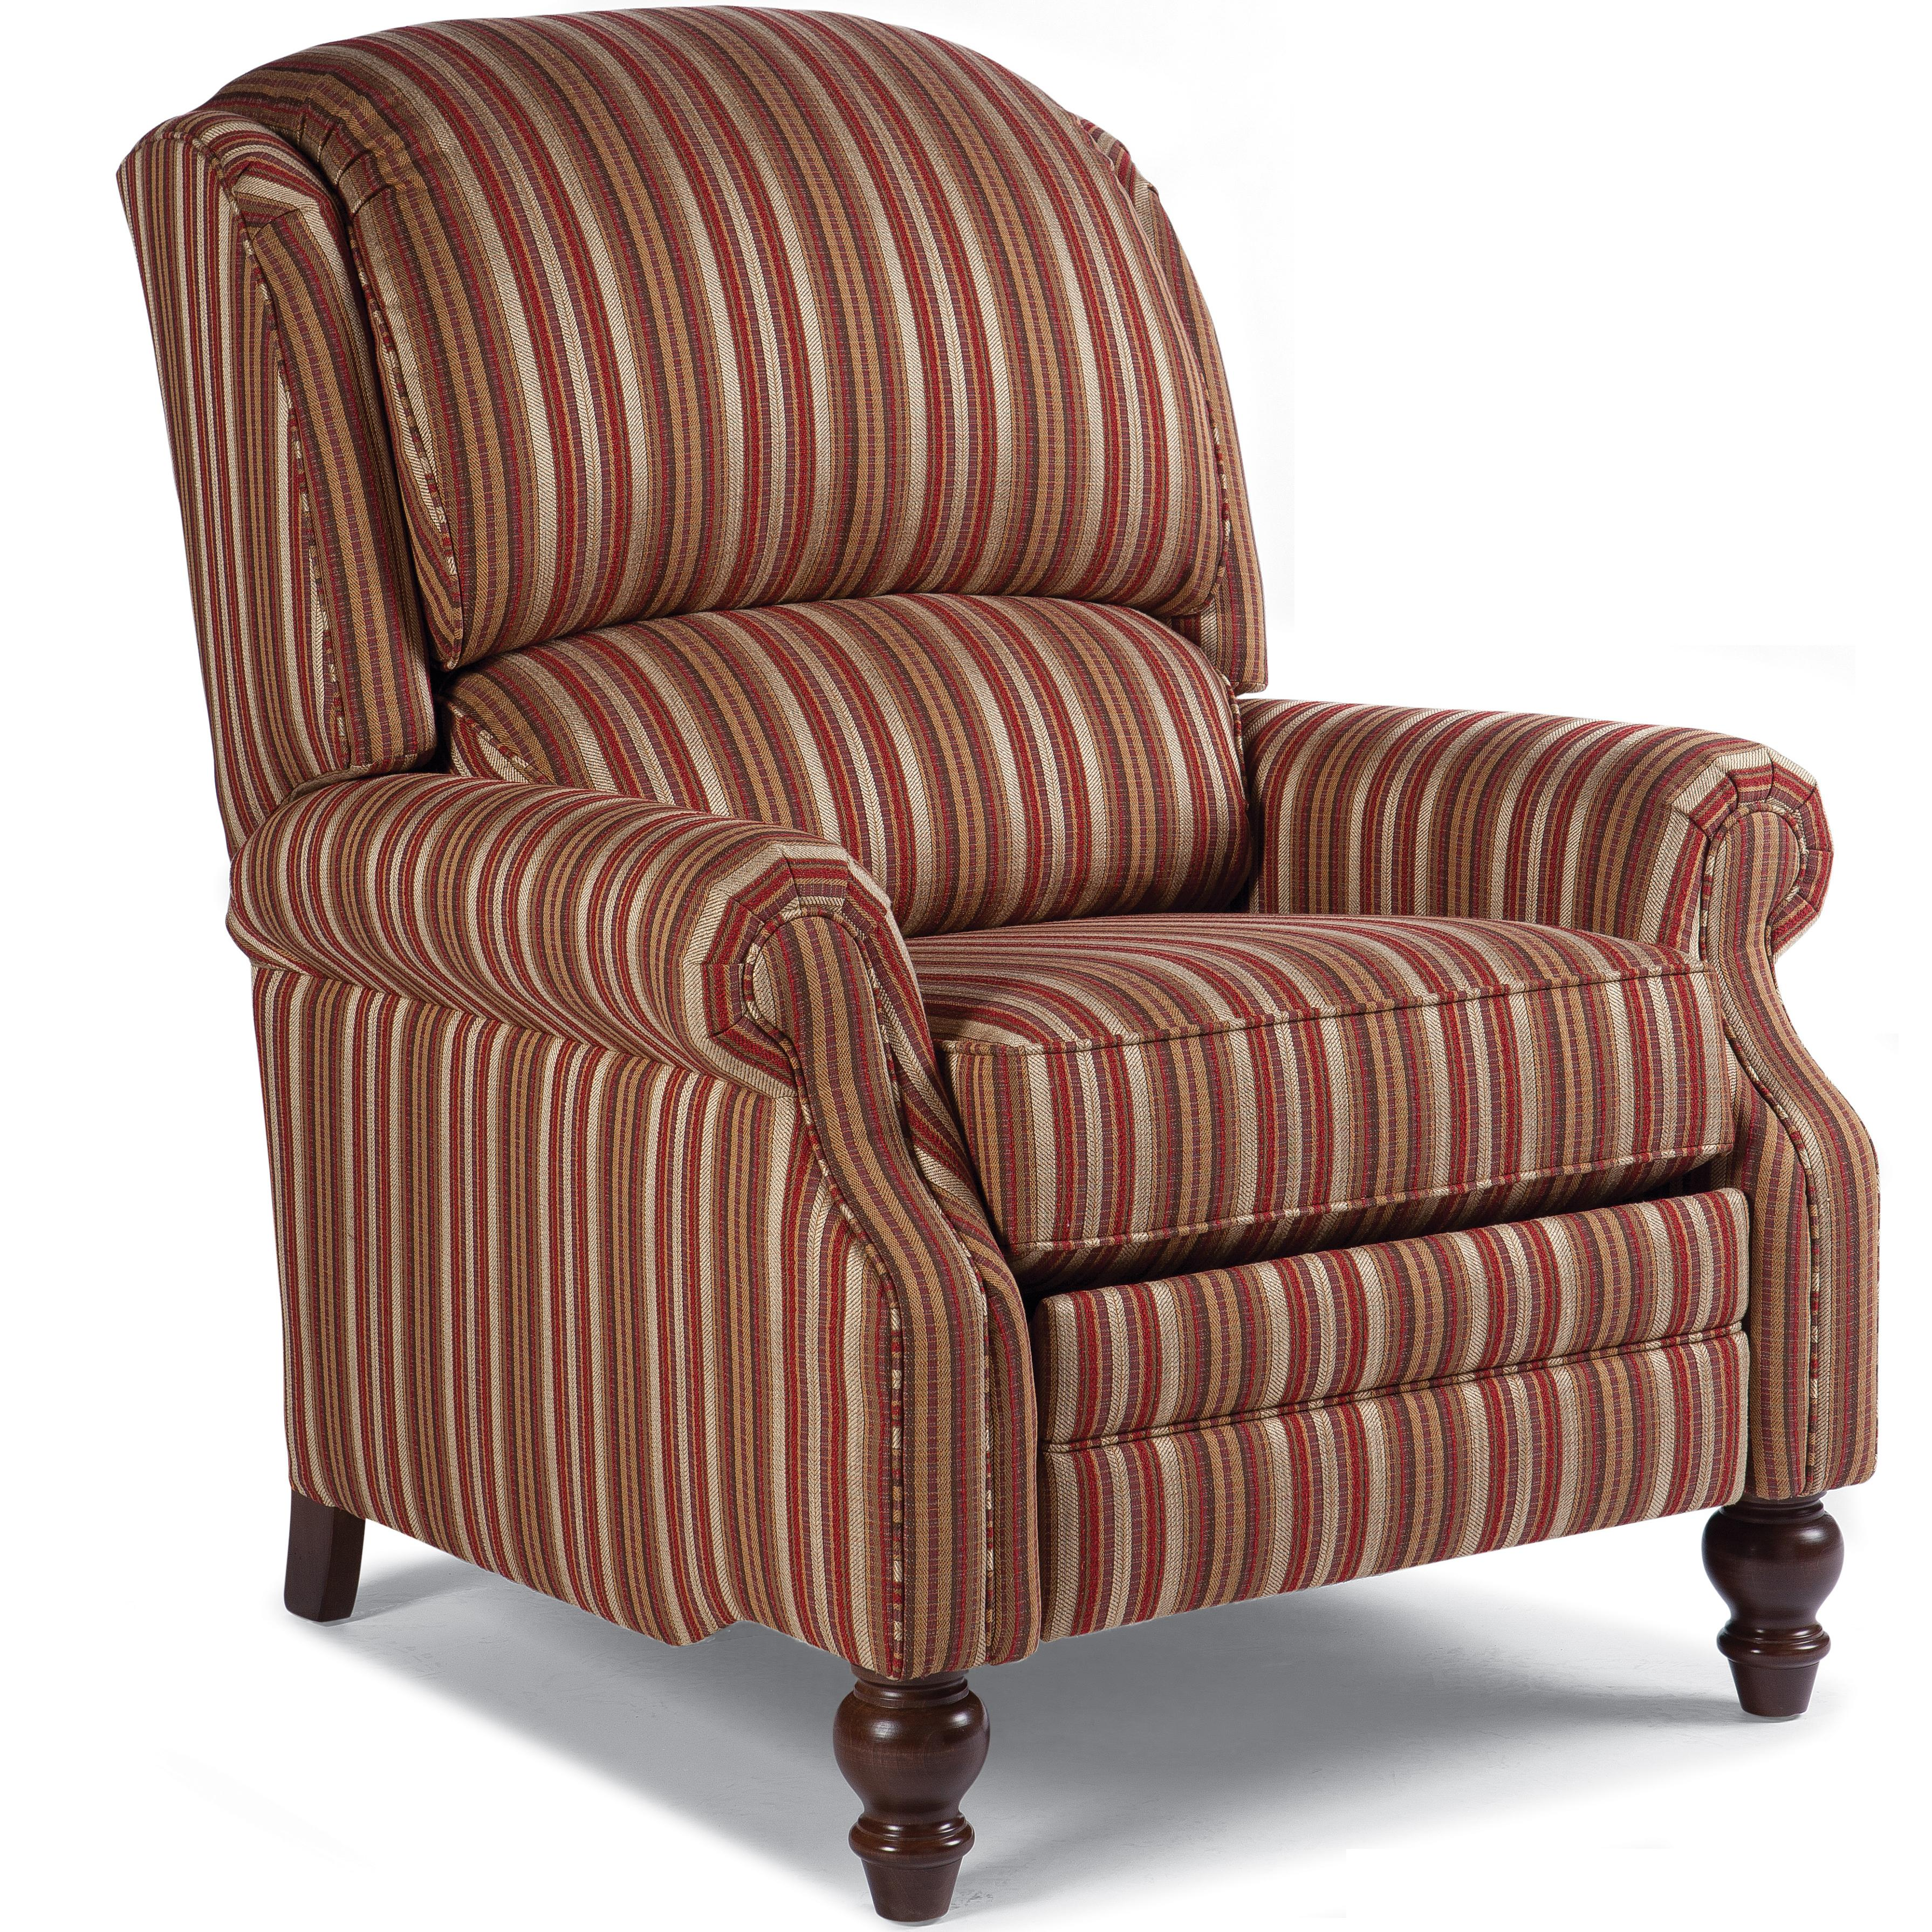 705 Pressback Reclining Chair by Smith Brothers at Pilgrim Furniture City